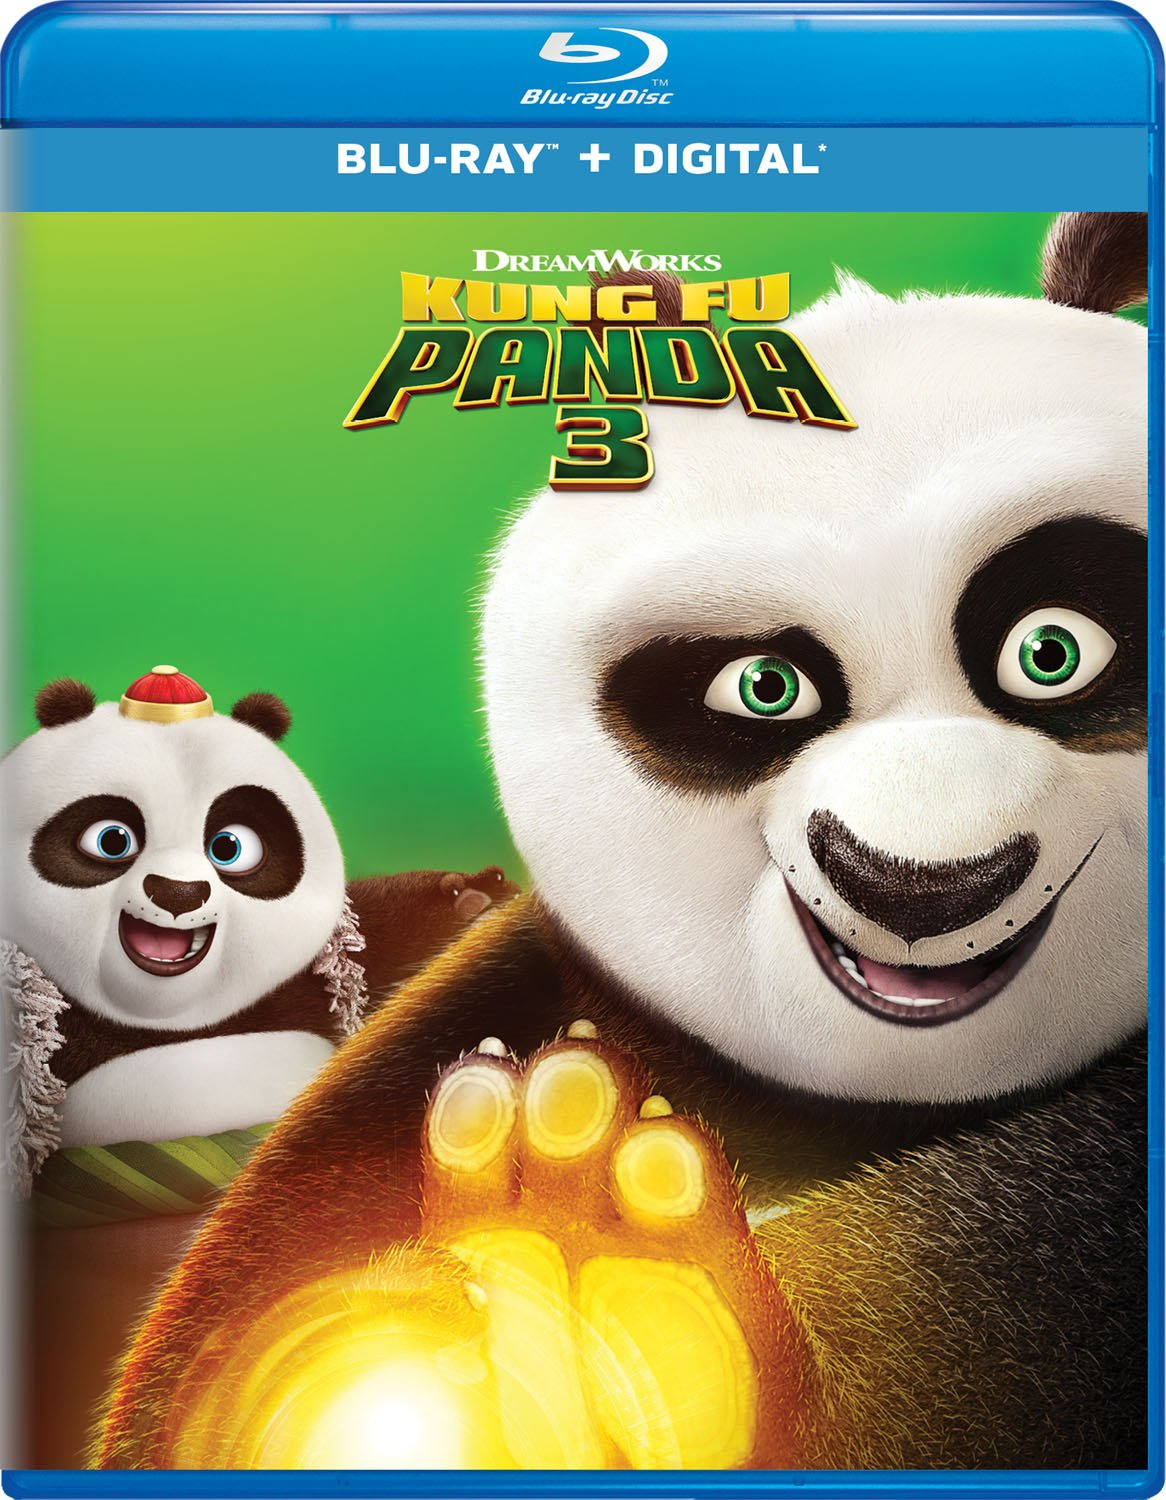 Blu-ray : Kung Fu Panda 3 (Digital Copy)